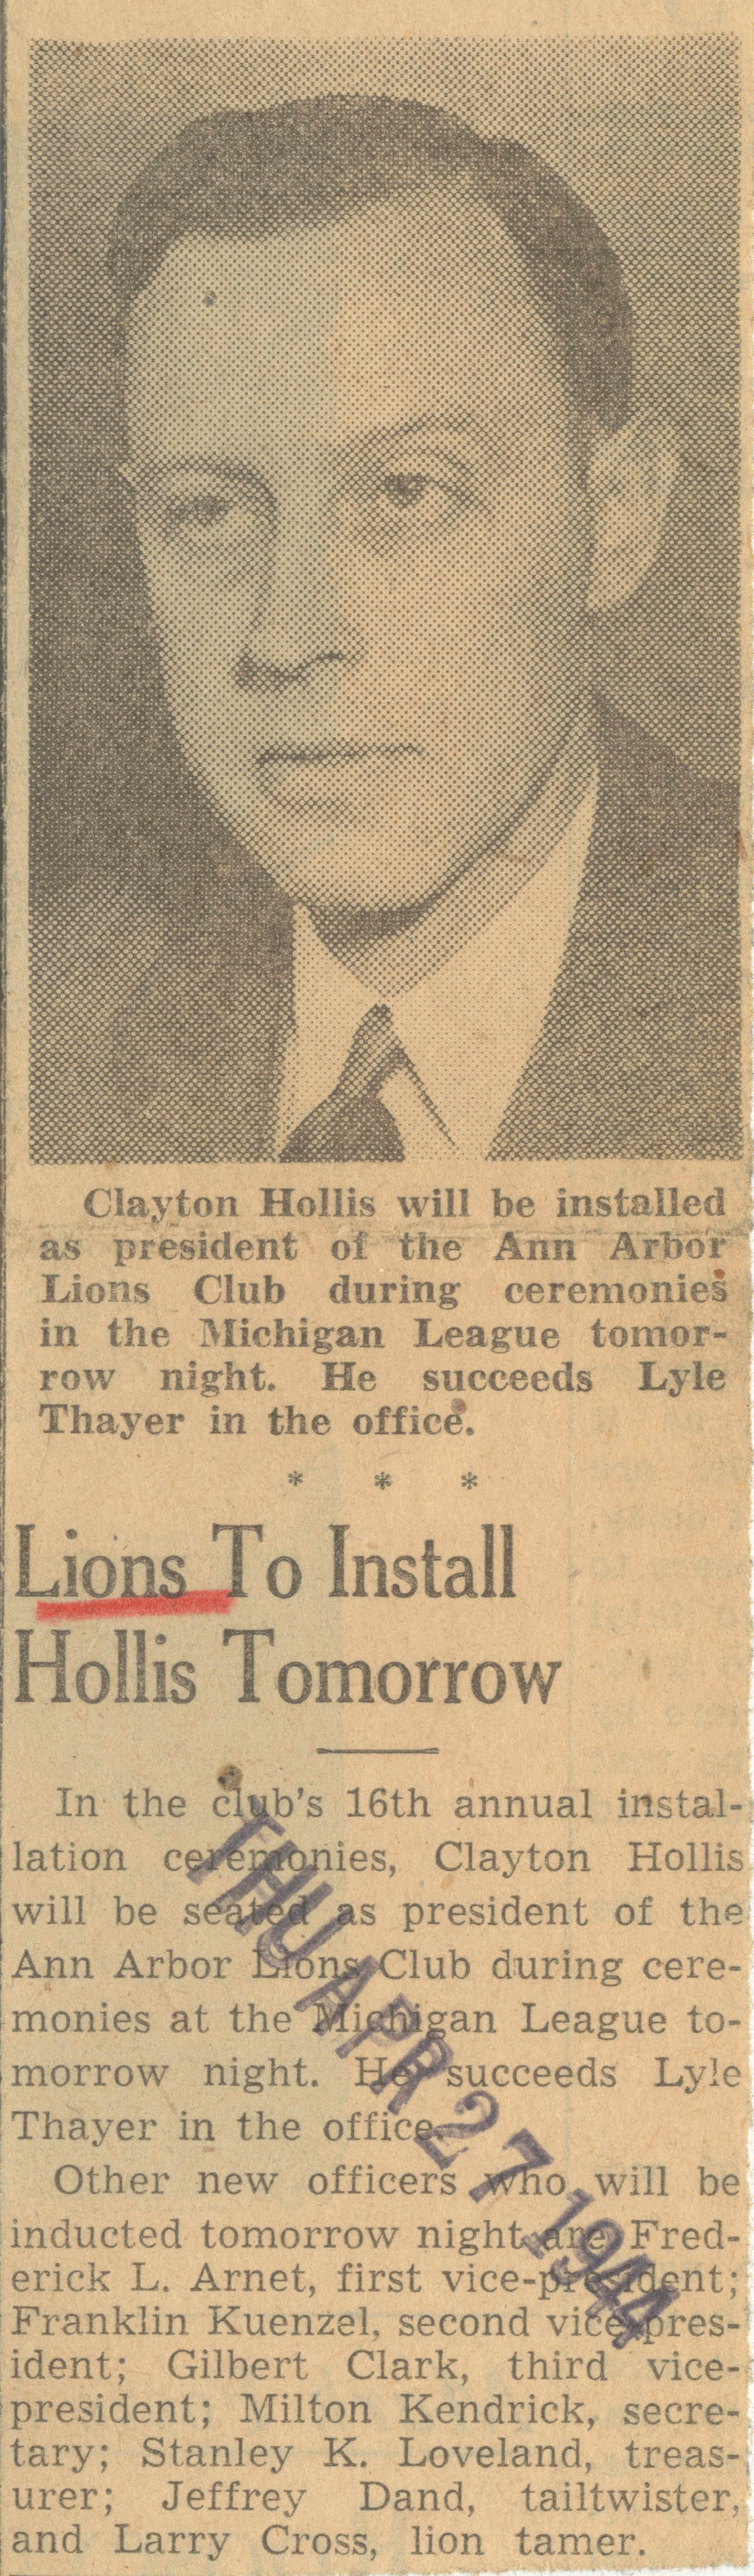 Lions To Install Hollis Tomorrow image